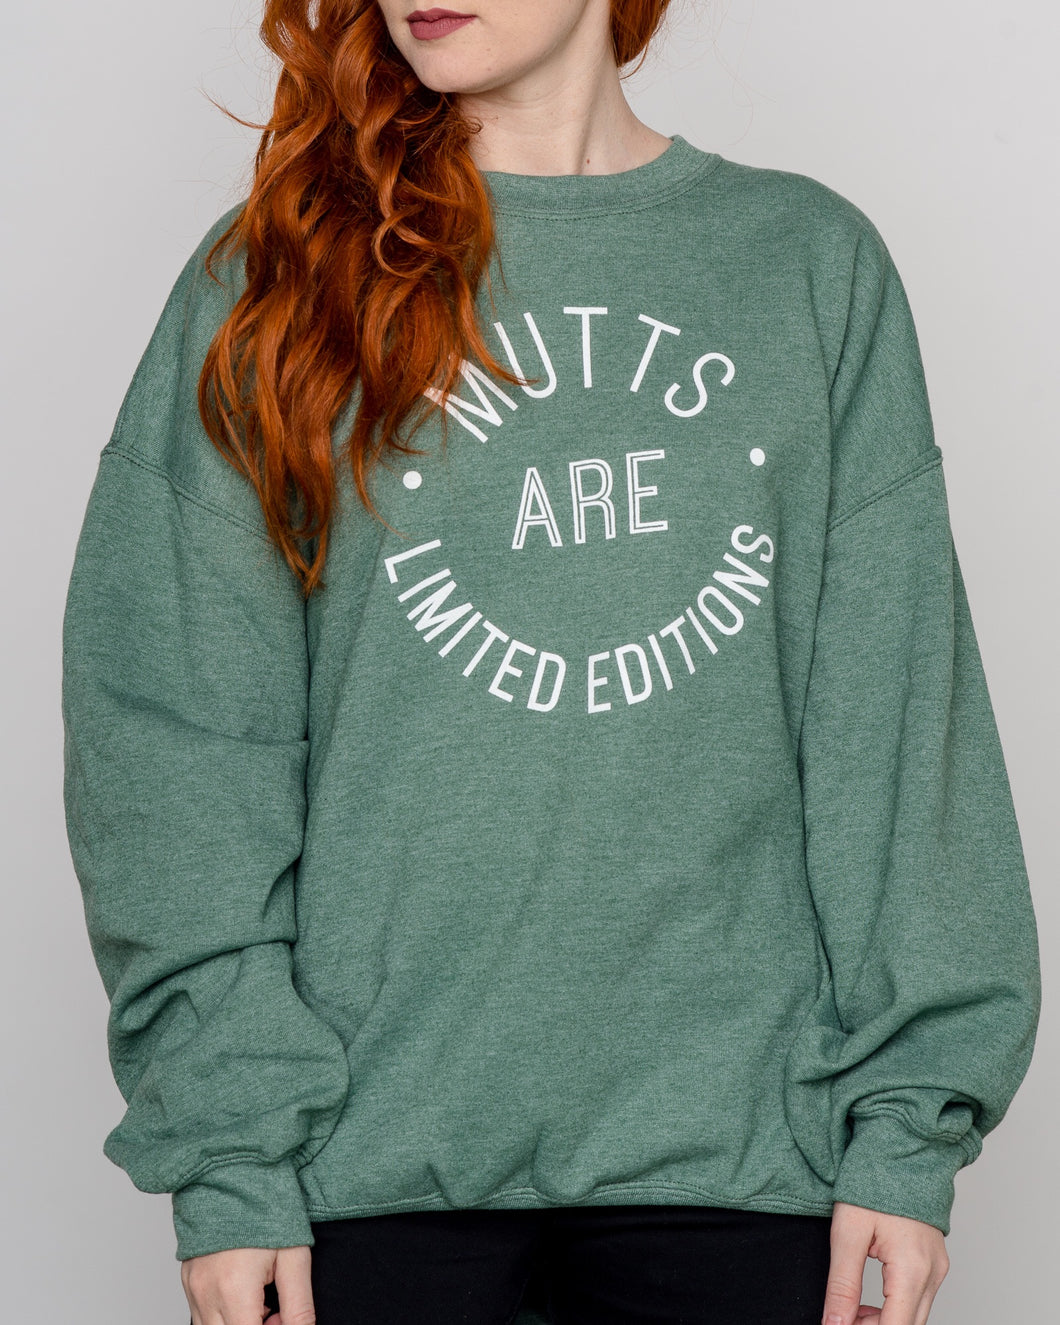 Mutts Are Limited Edition Sweatshirt - Green (discontinued)